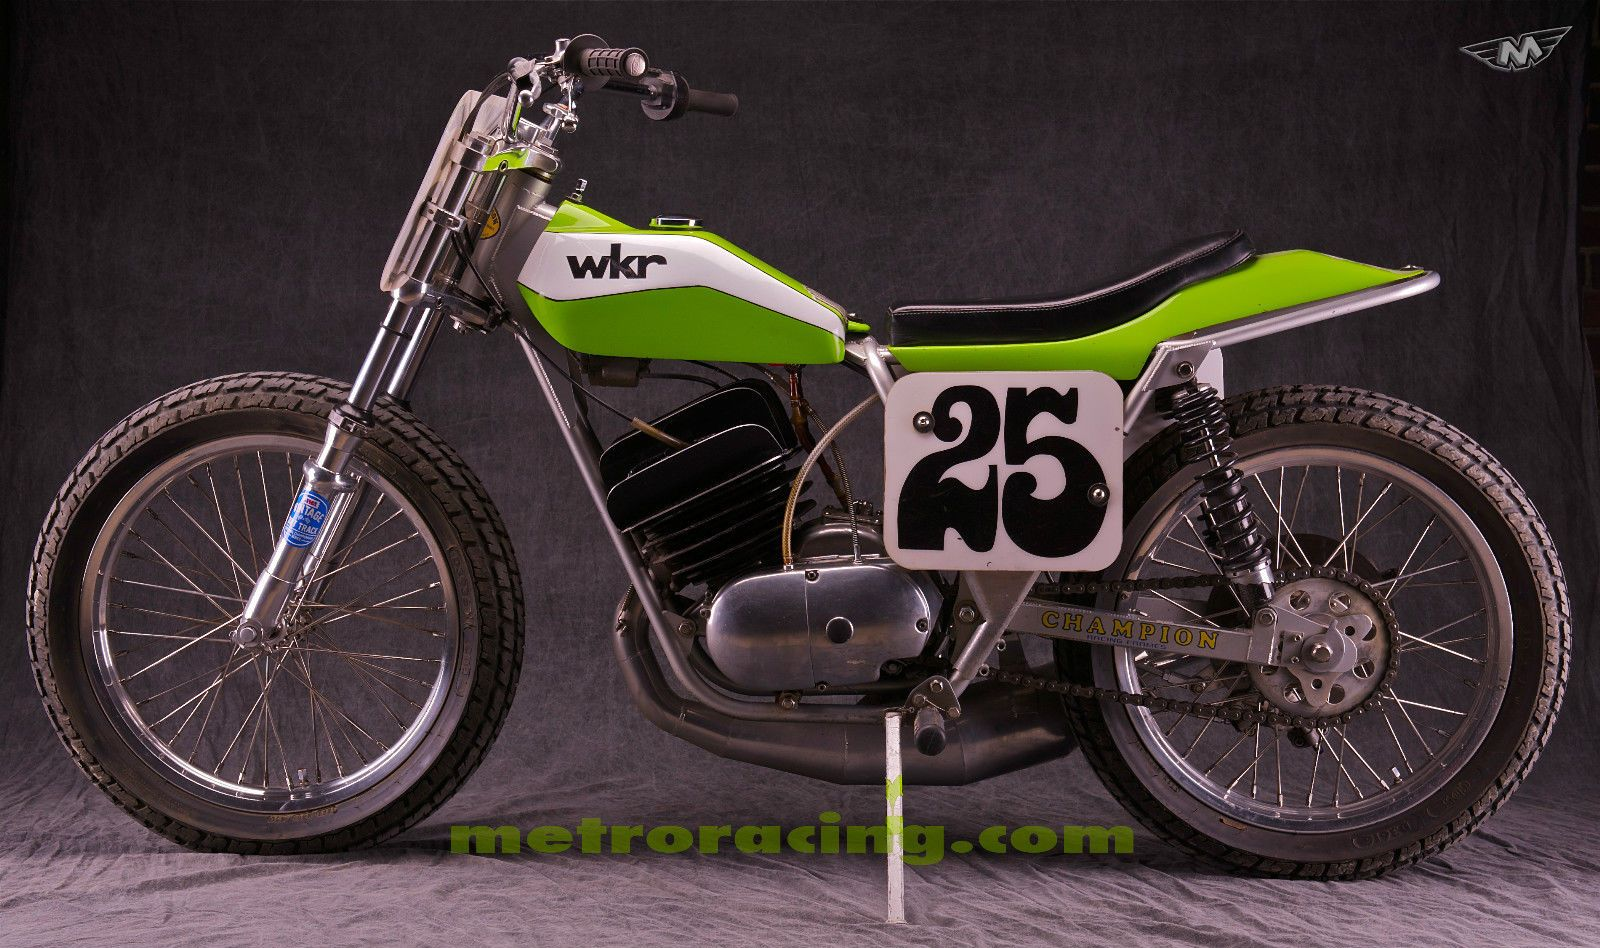 Tz750 flat trackers motos dirt track short trac flat track pinterest flat tracker dirt track and dirt biking